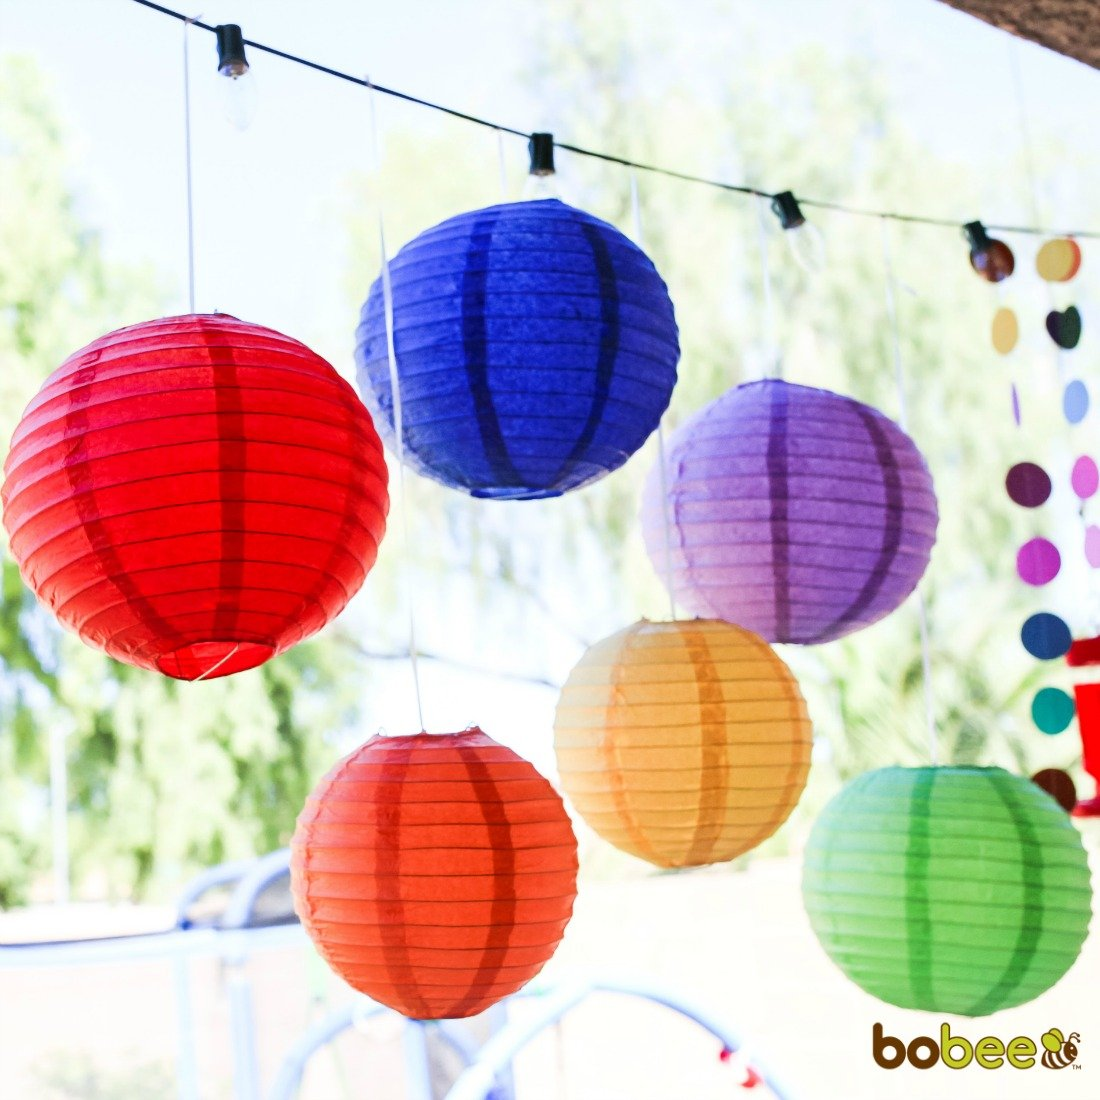 Details about Bobee Rainbow Party Decorations, Fiesta Party Supplies Paper  Lanterns, 6 Count